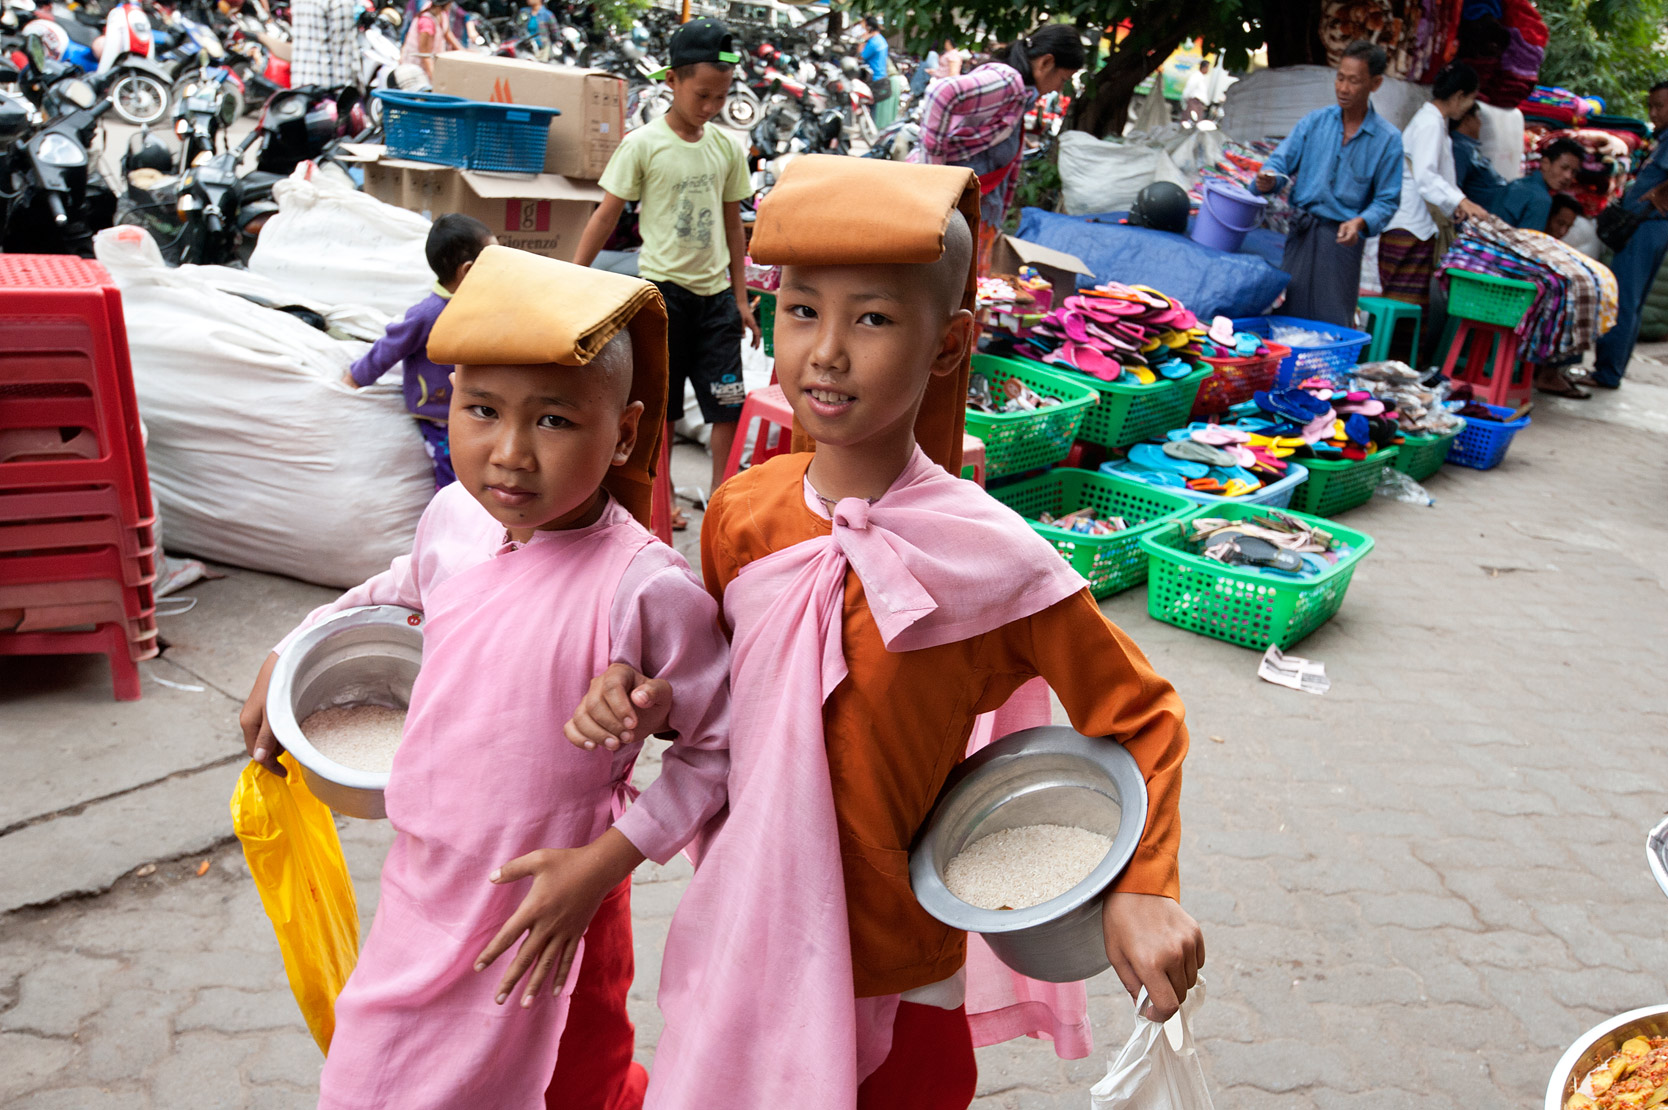 Two young shaven headed Buddhist nuns in pink robes, heads covered, alms bowls full of donated rice in Mandalay street market, Myanmar.